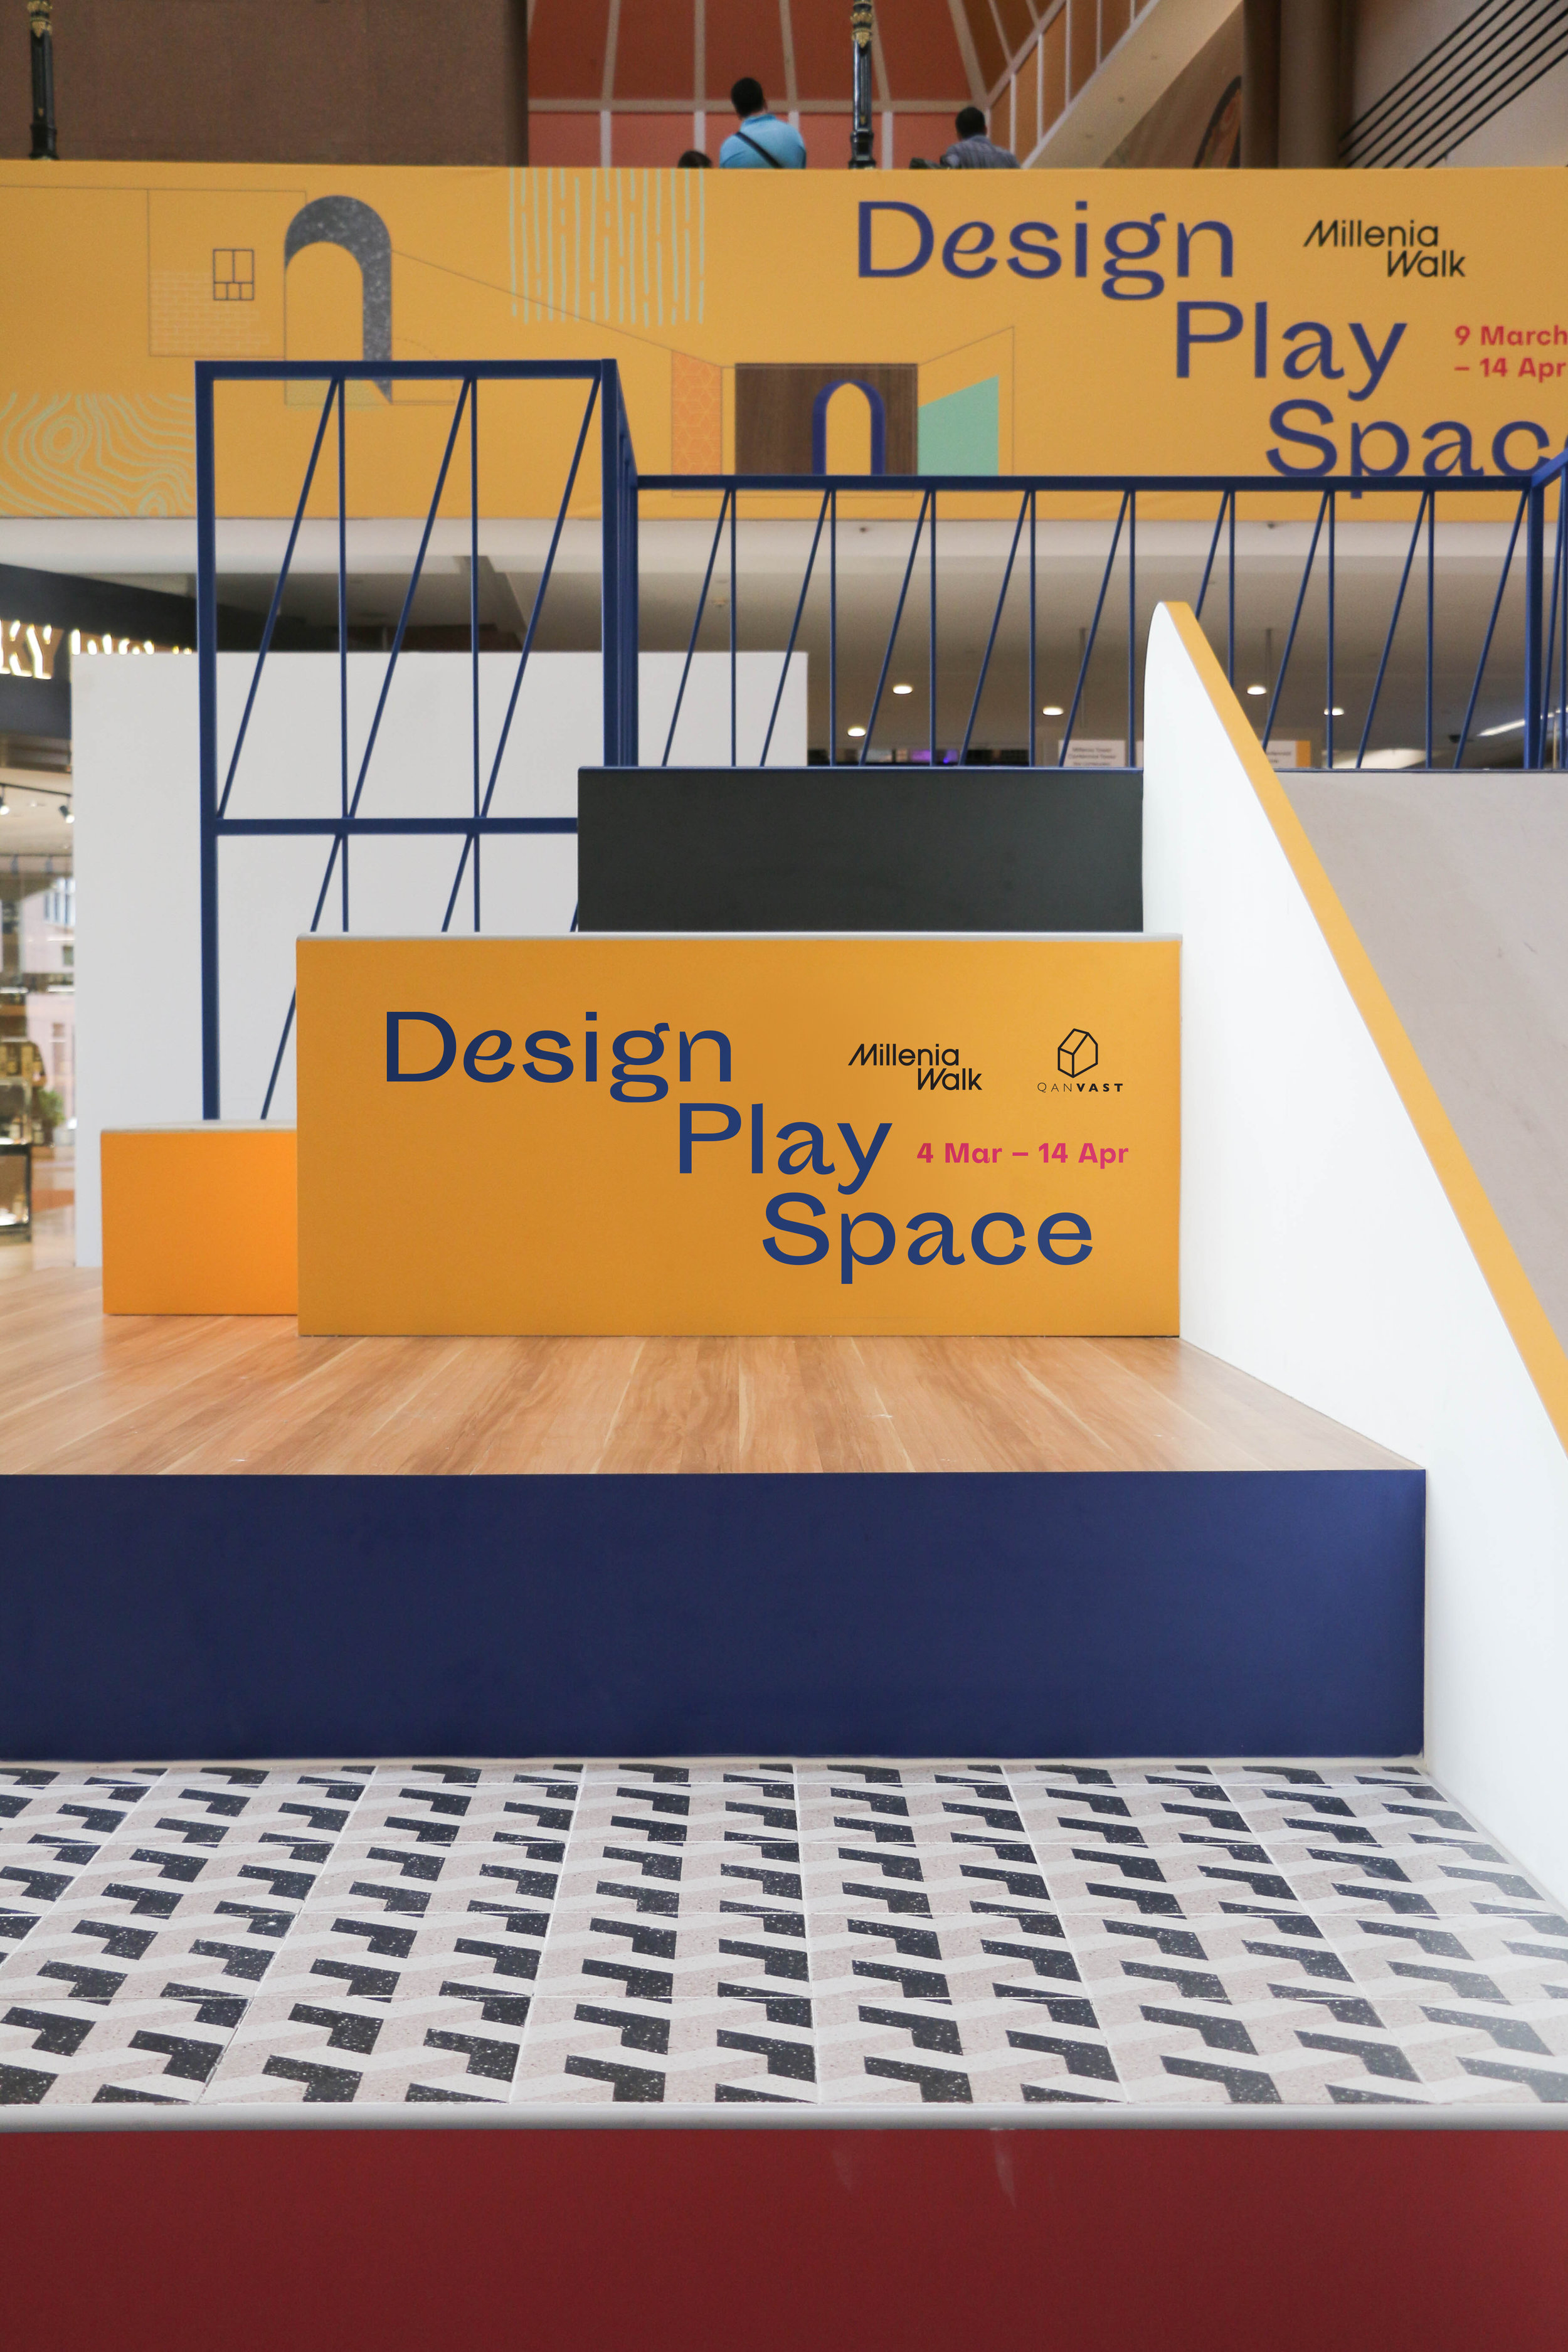 outeredit - millenia walk design play space - front